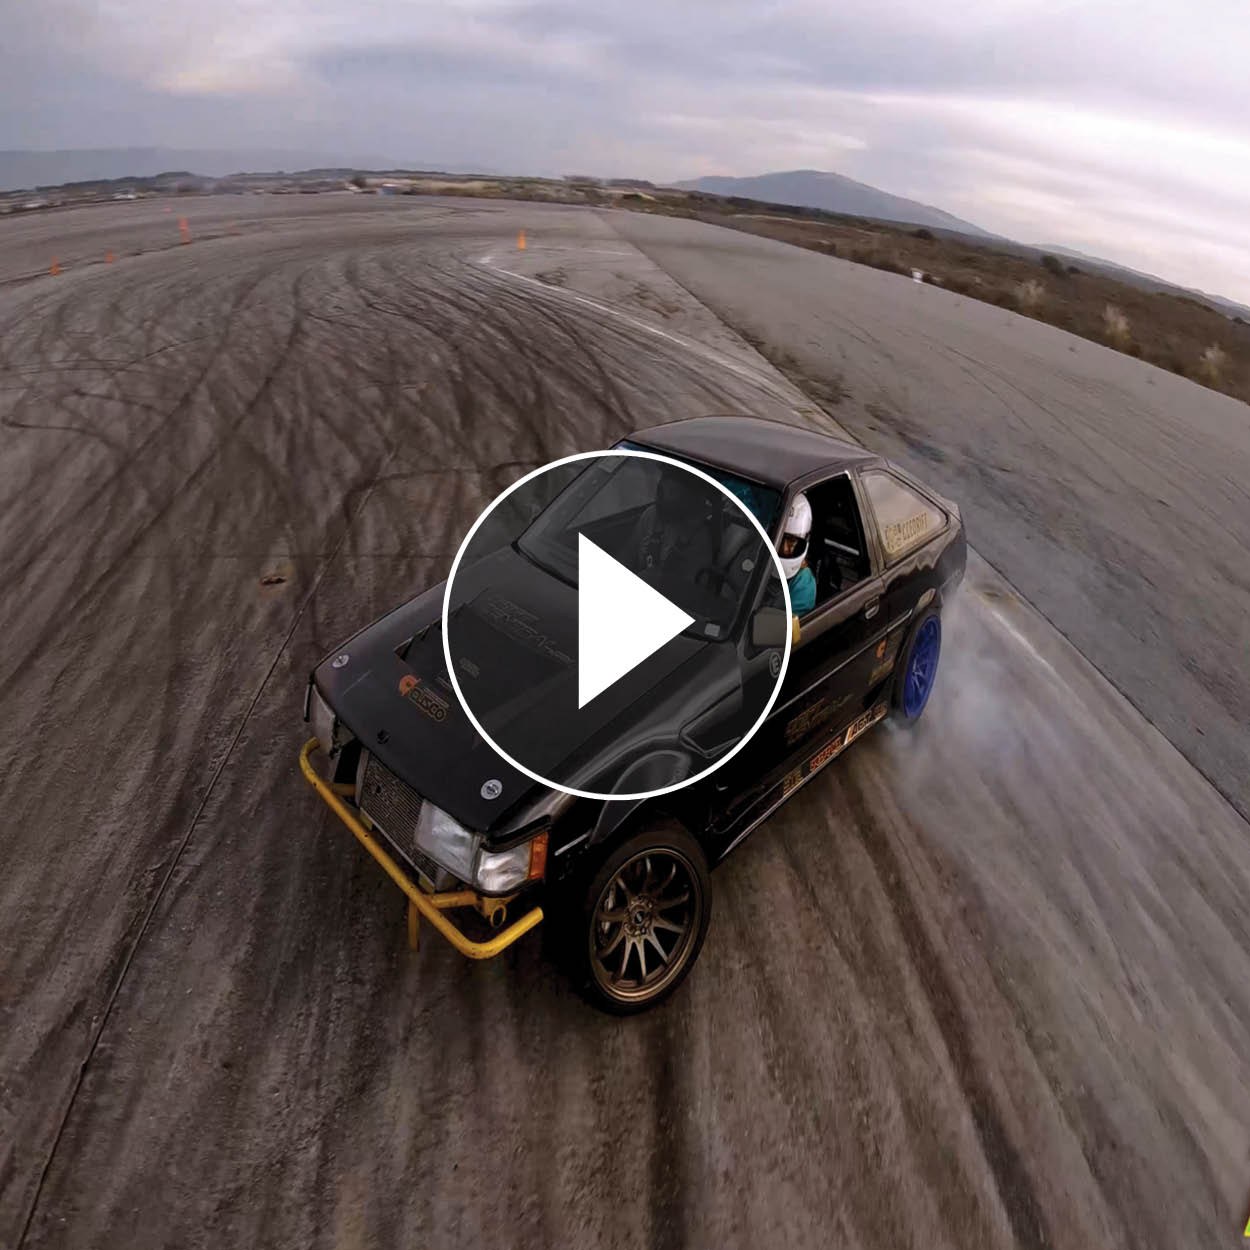 Drifting and droning 🚗 ⌘ WATCH TOP DRONE VIDEOS